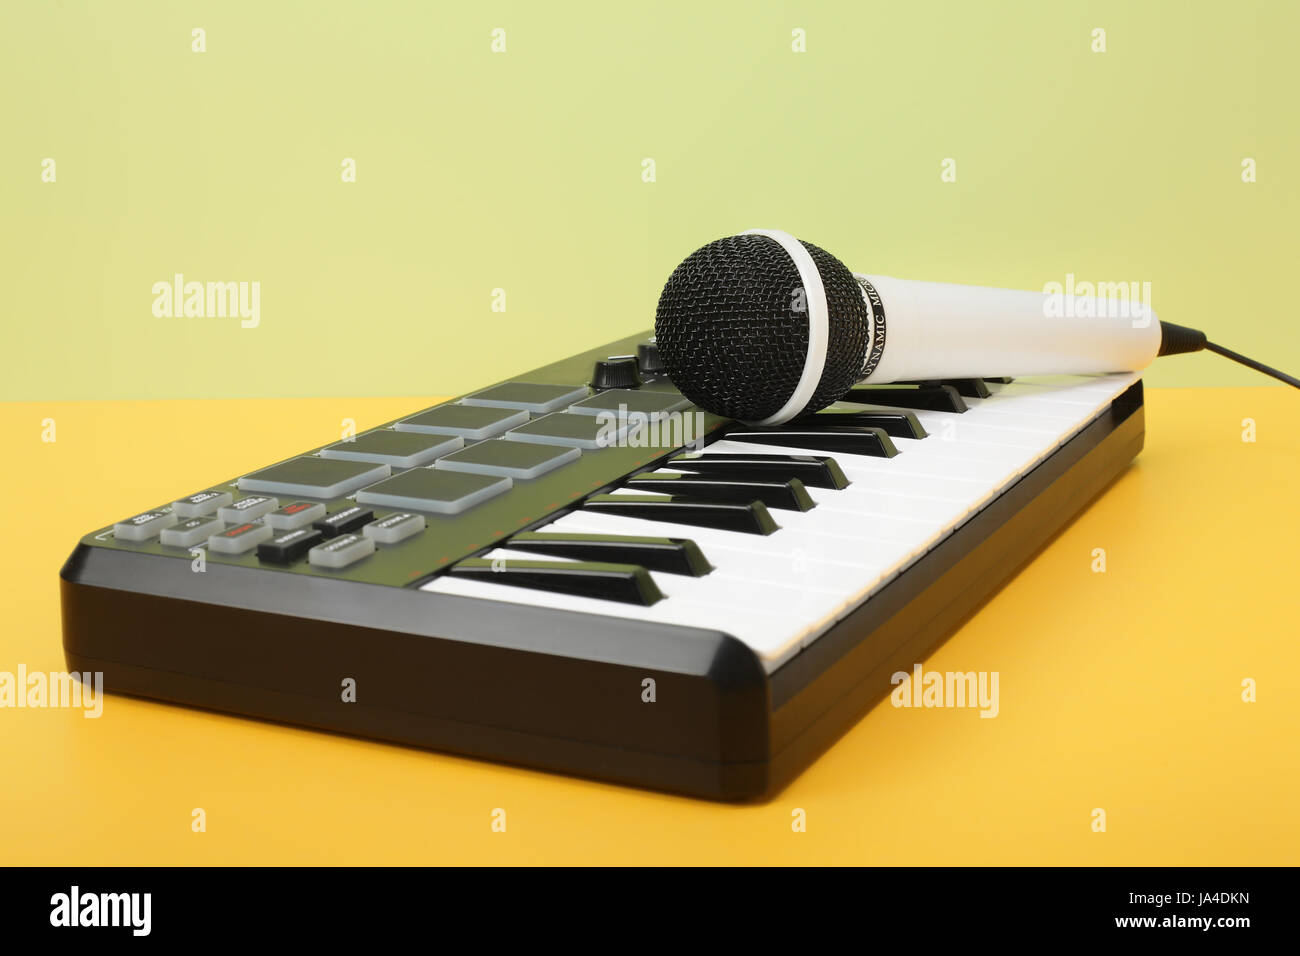 Musical instrument - MIDI keyboard and vokal microphone for a karaoke on a flavovirent background. - Stock Image